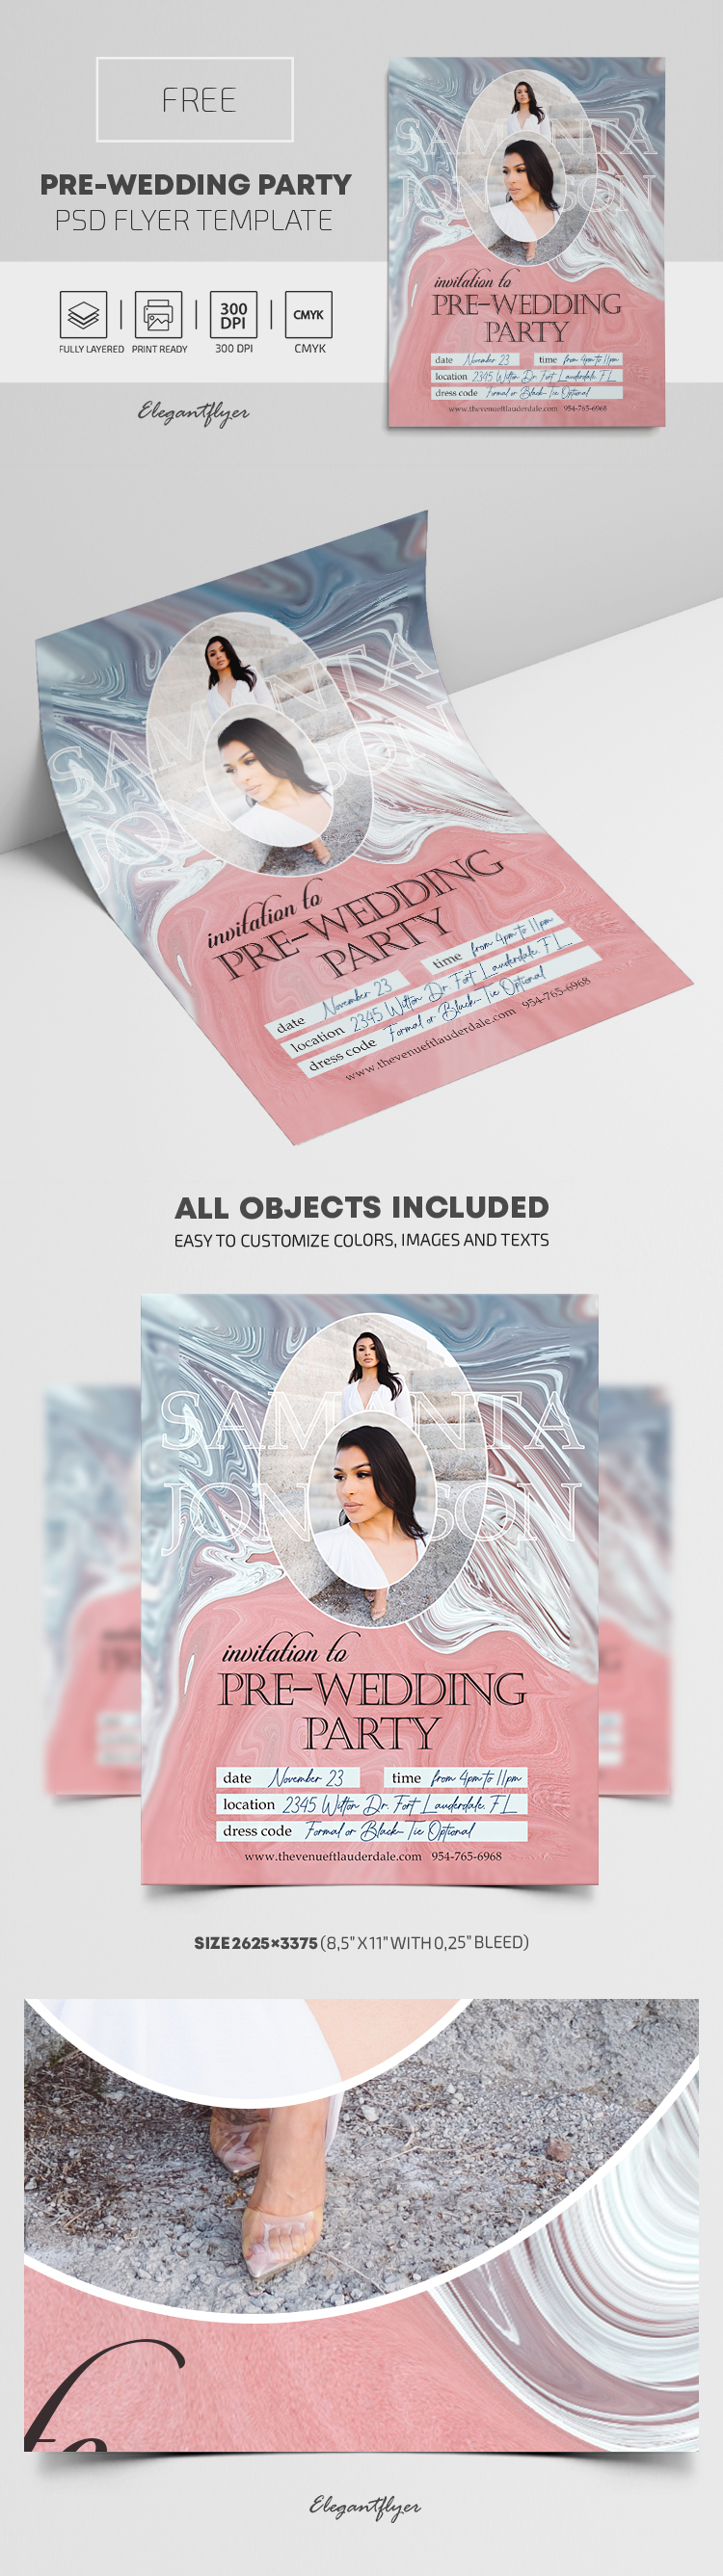 Pre-Wedding Party – Free Flyer PSD Template